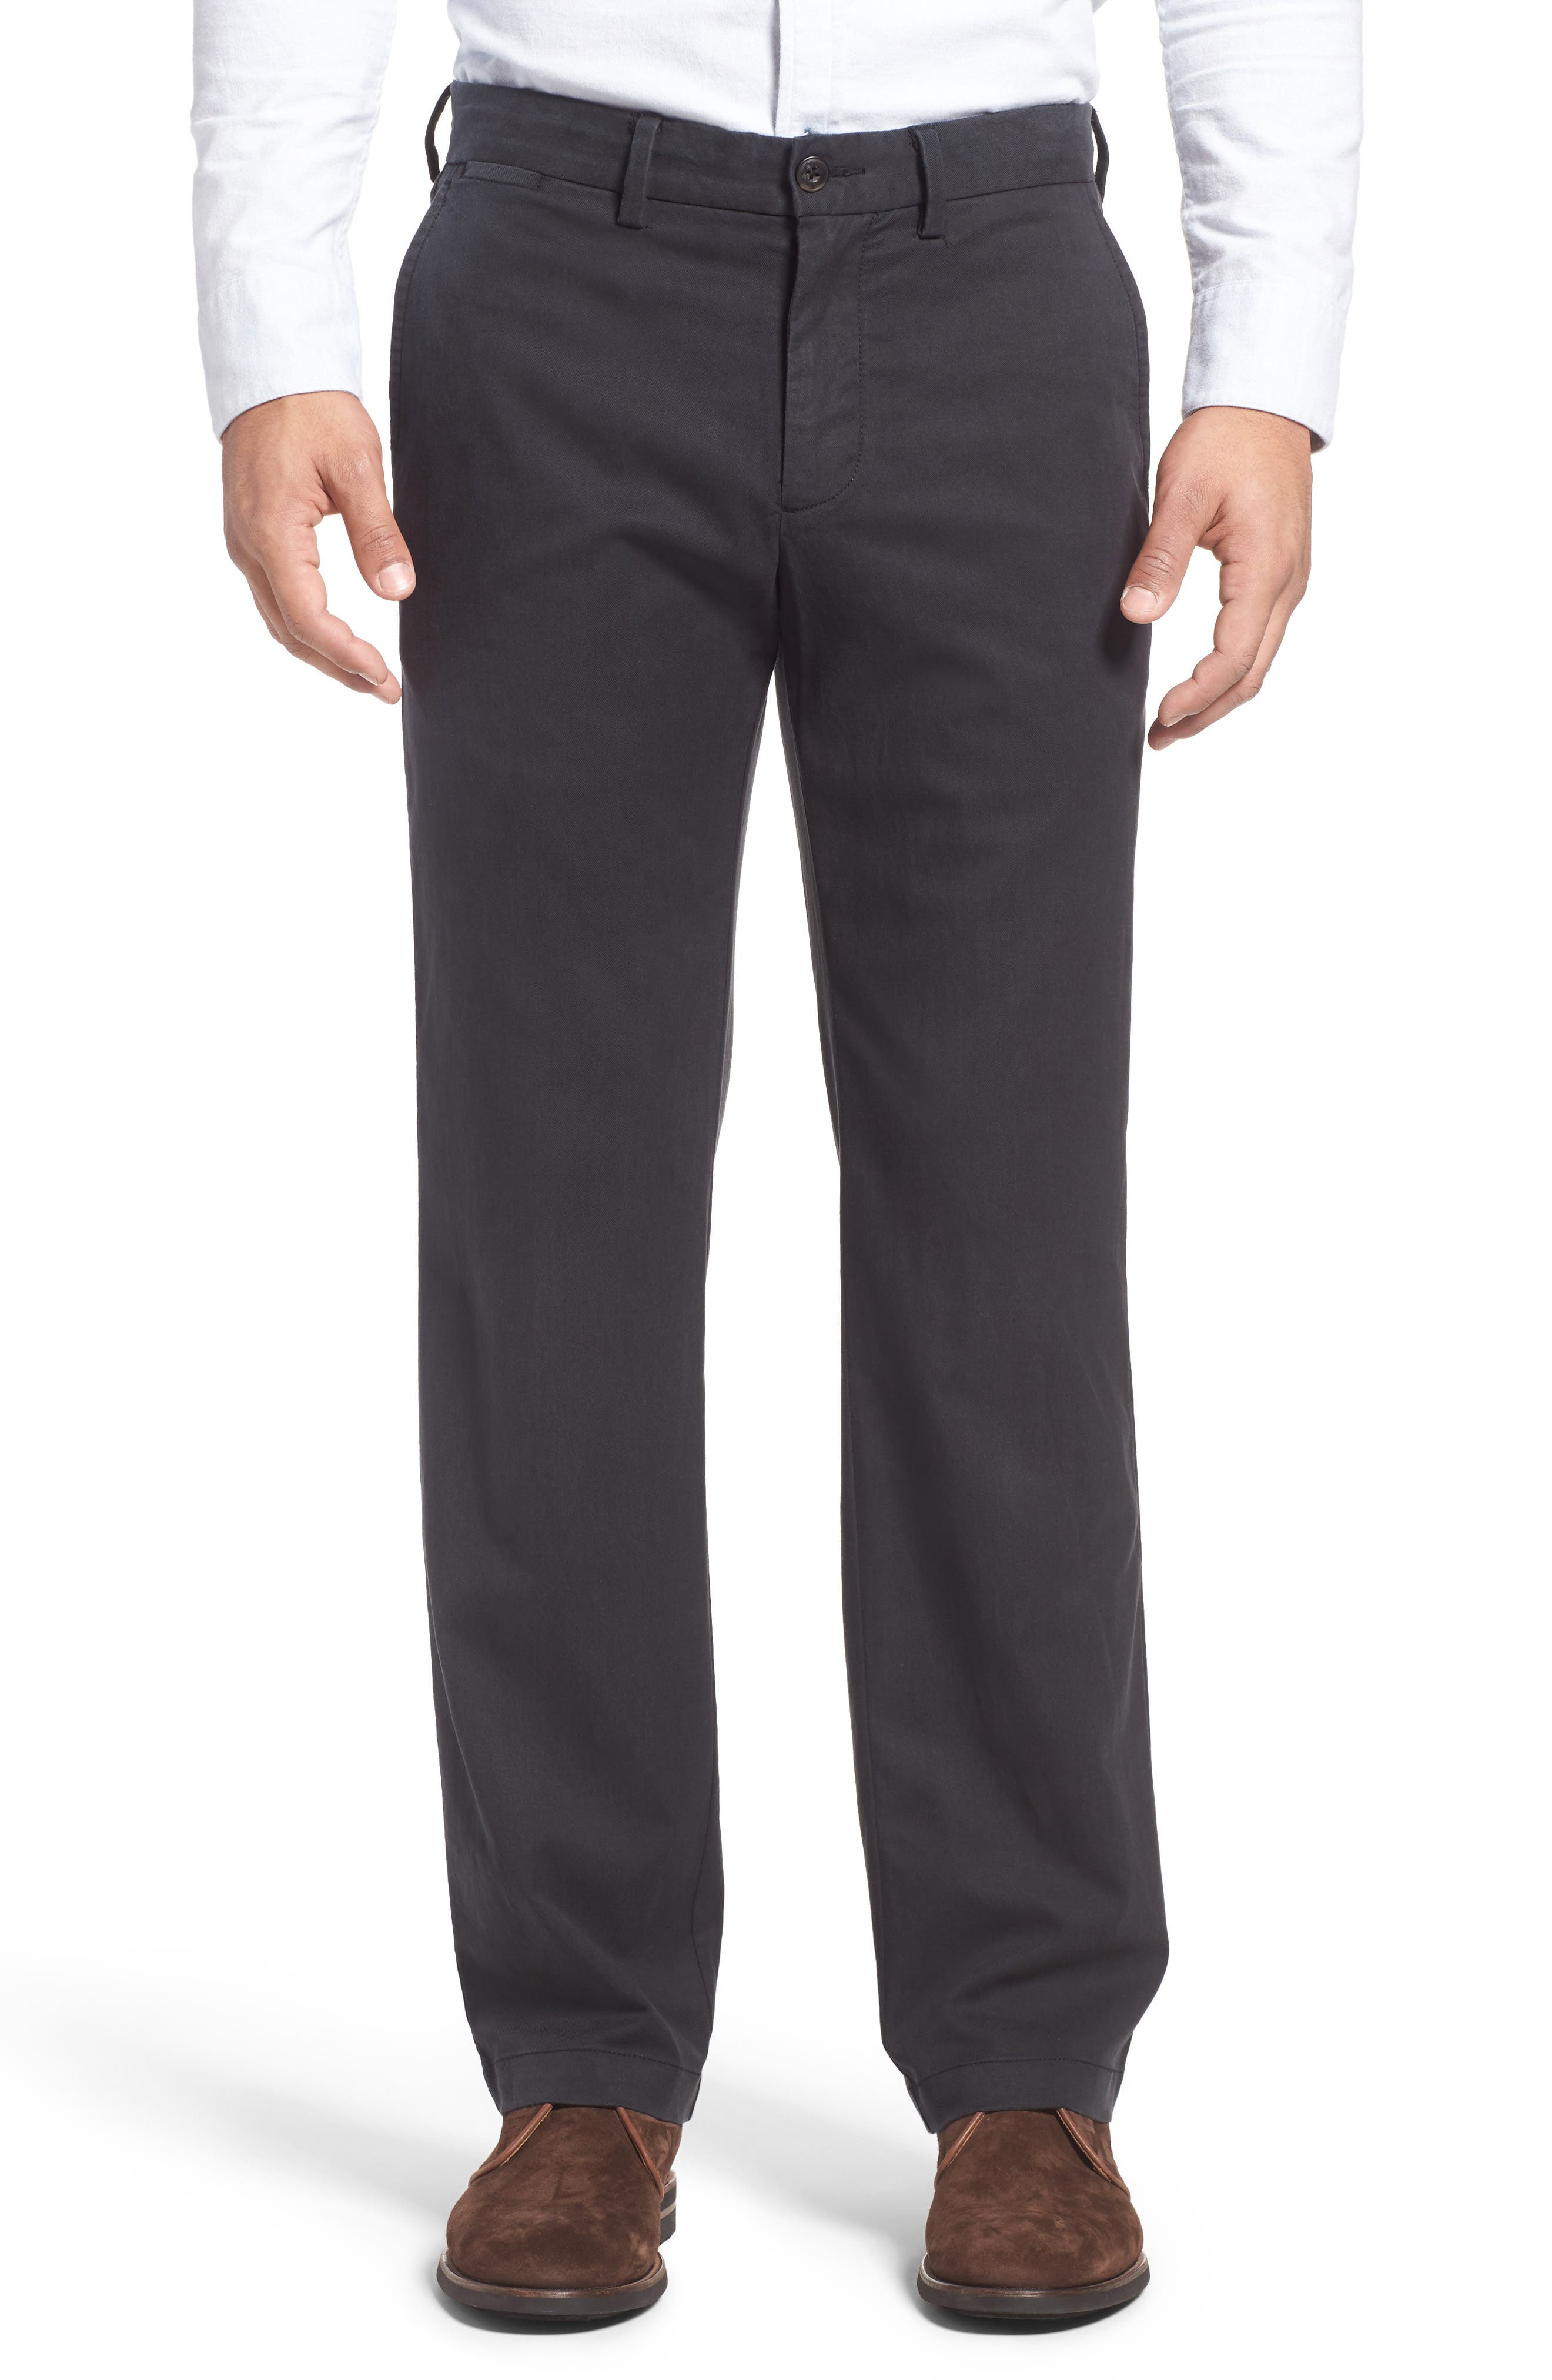 Offshore Flat Front Pants,                         Main,                         color, 001